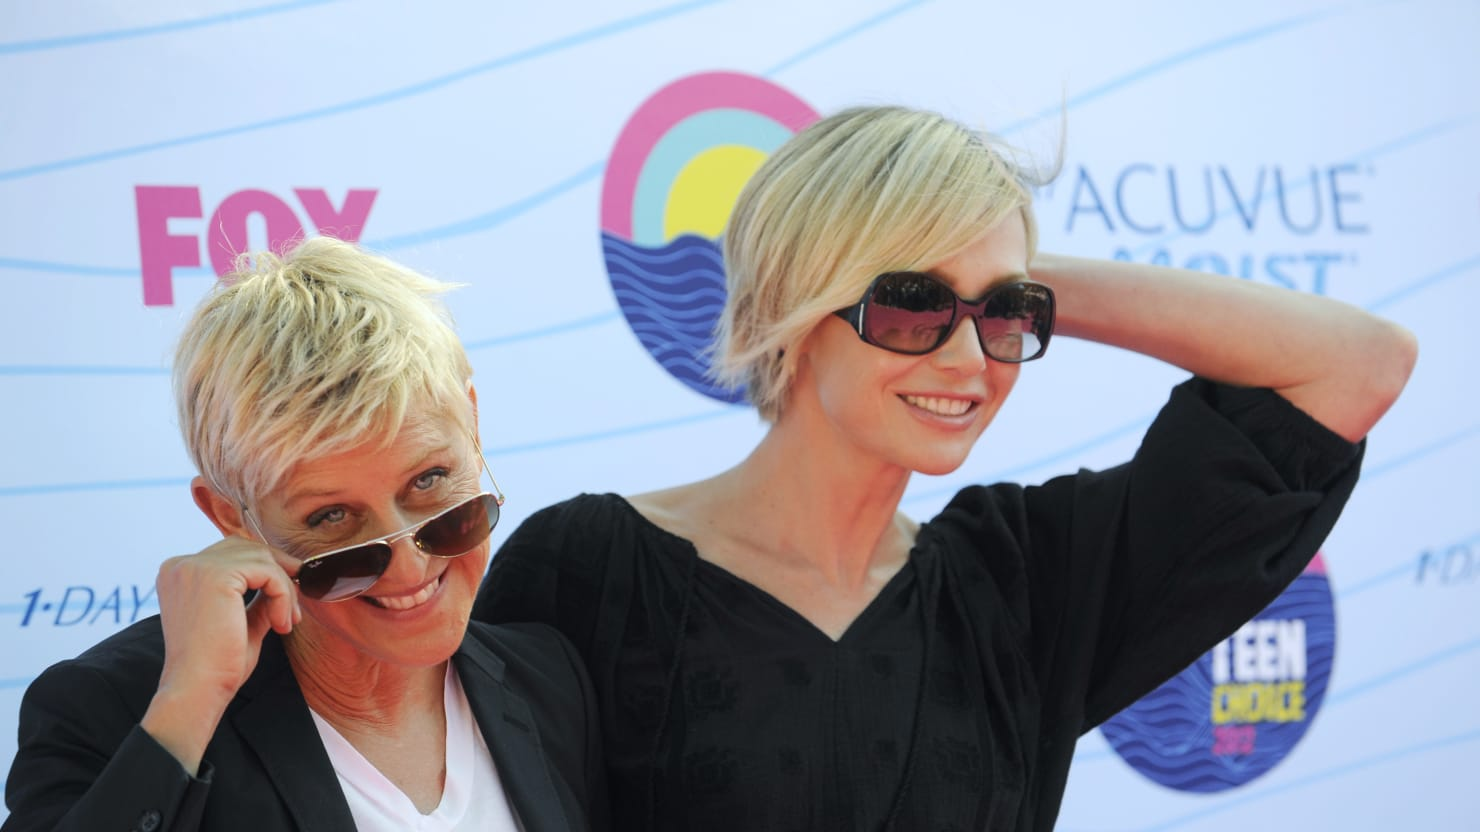 Ellen Stands by Wife Portia De Rossi, Who Claims Steven Seagal Exposed Himself to Her